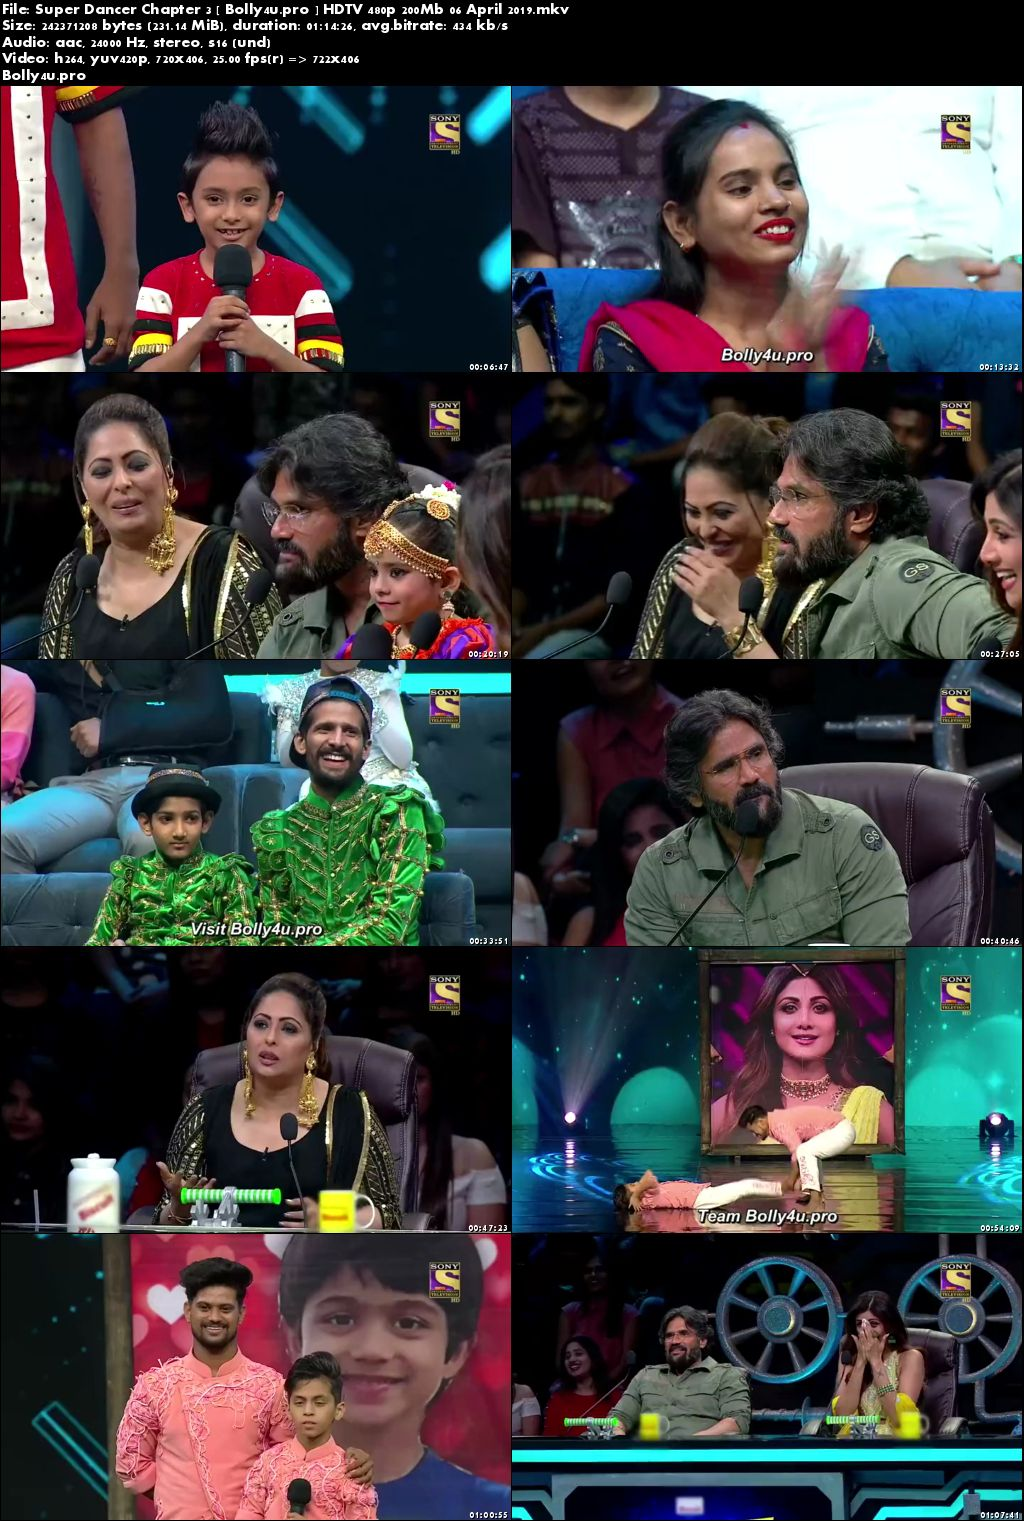 Super Dancer Chapter 3 HDTV 480p 200Mb 06 April 2019 Download